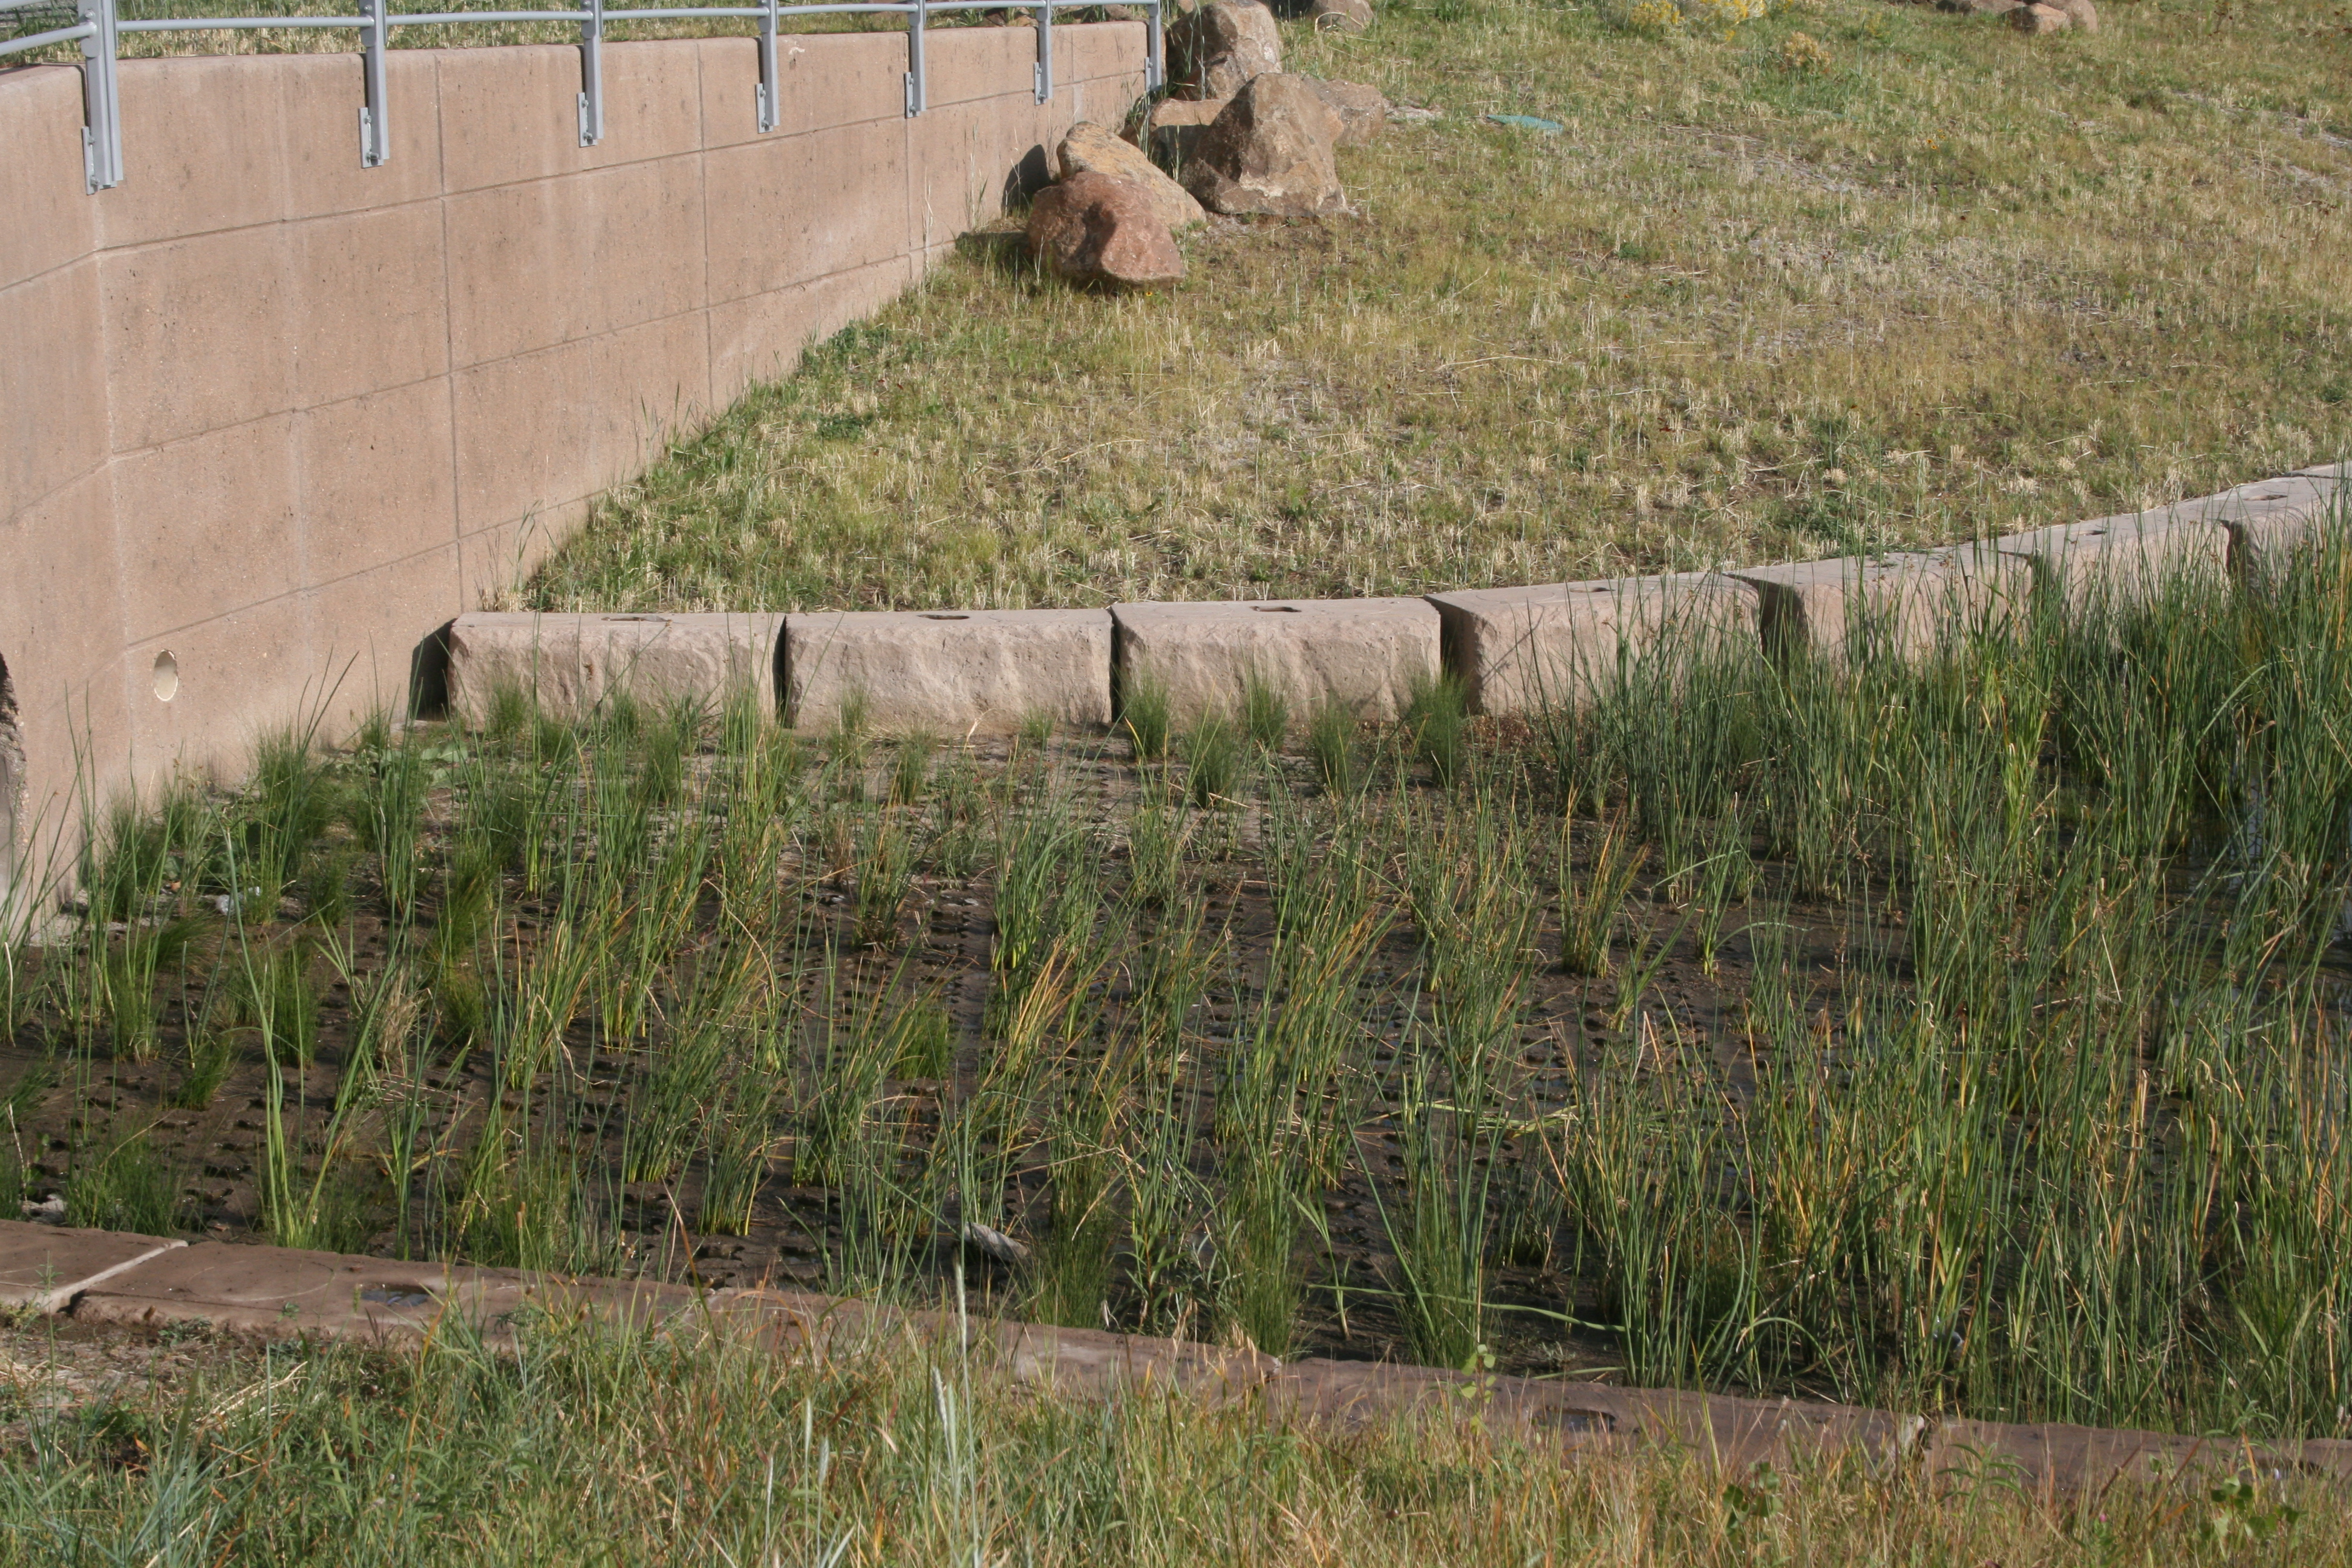 Grasscrete - NREL Detention Pond - 08